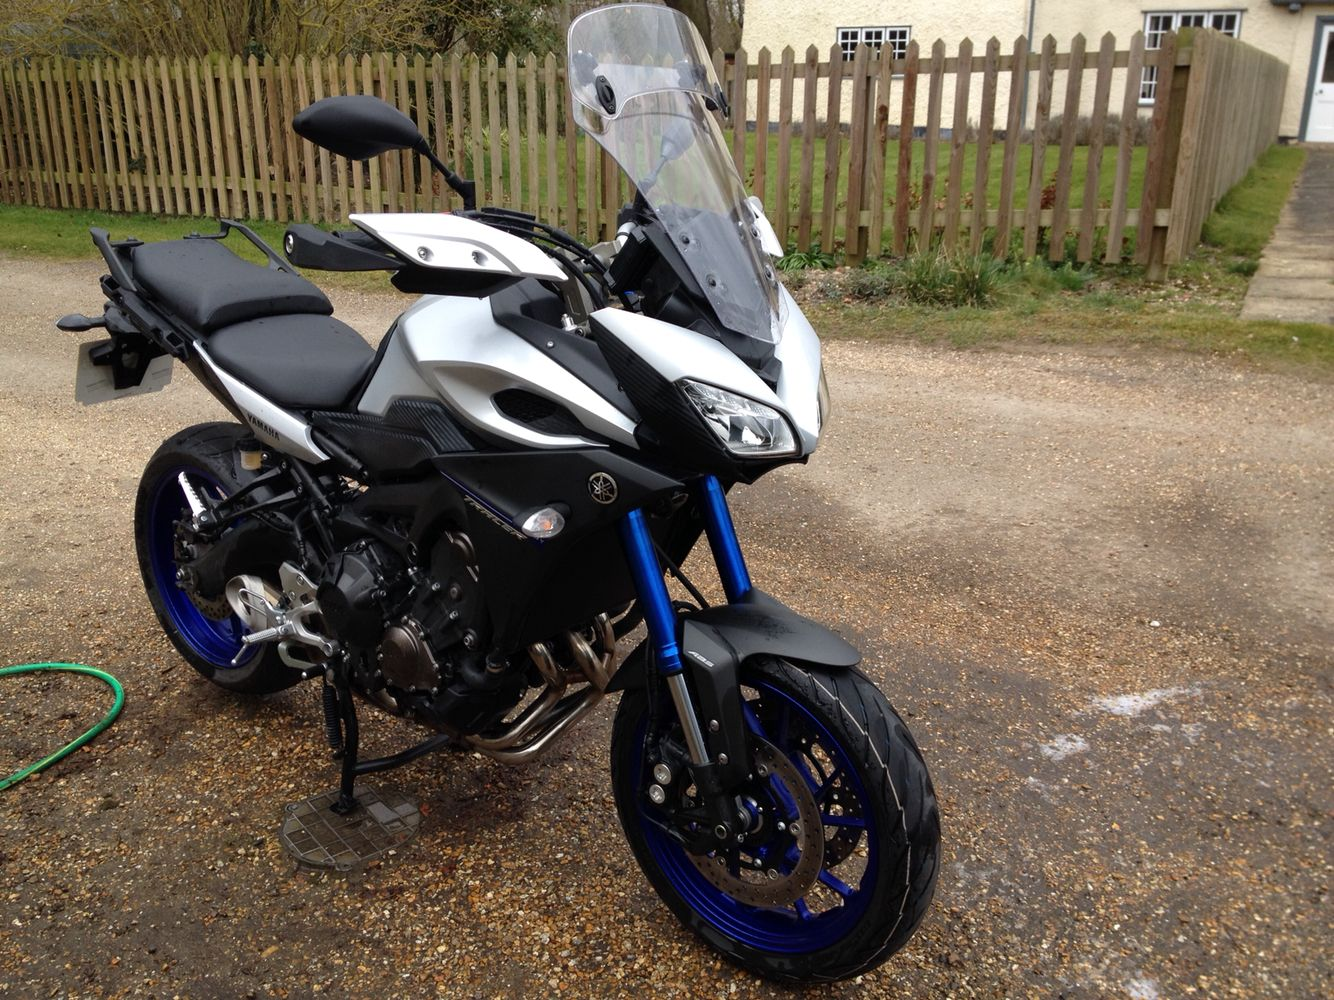 Front View Of Lynx Fairing On Rick39s Drz400sm Low Beam Is